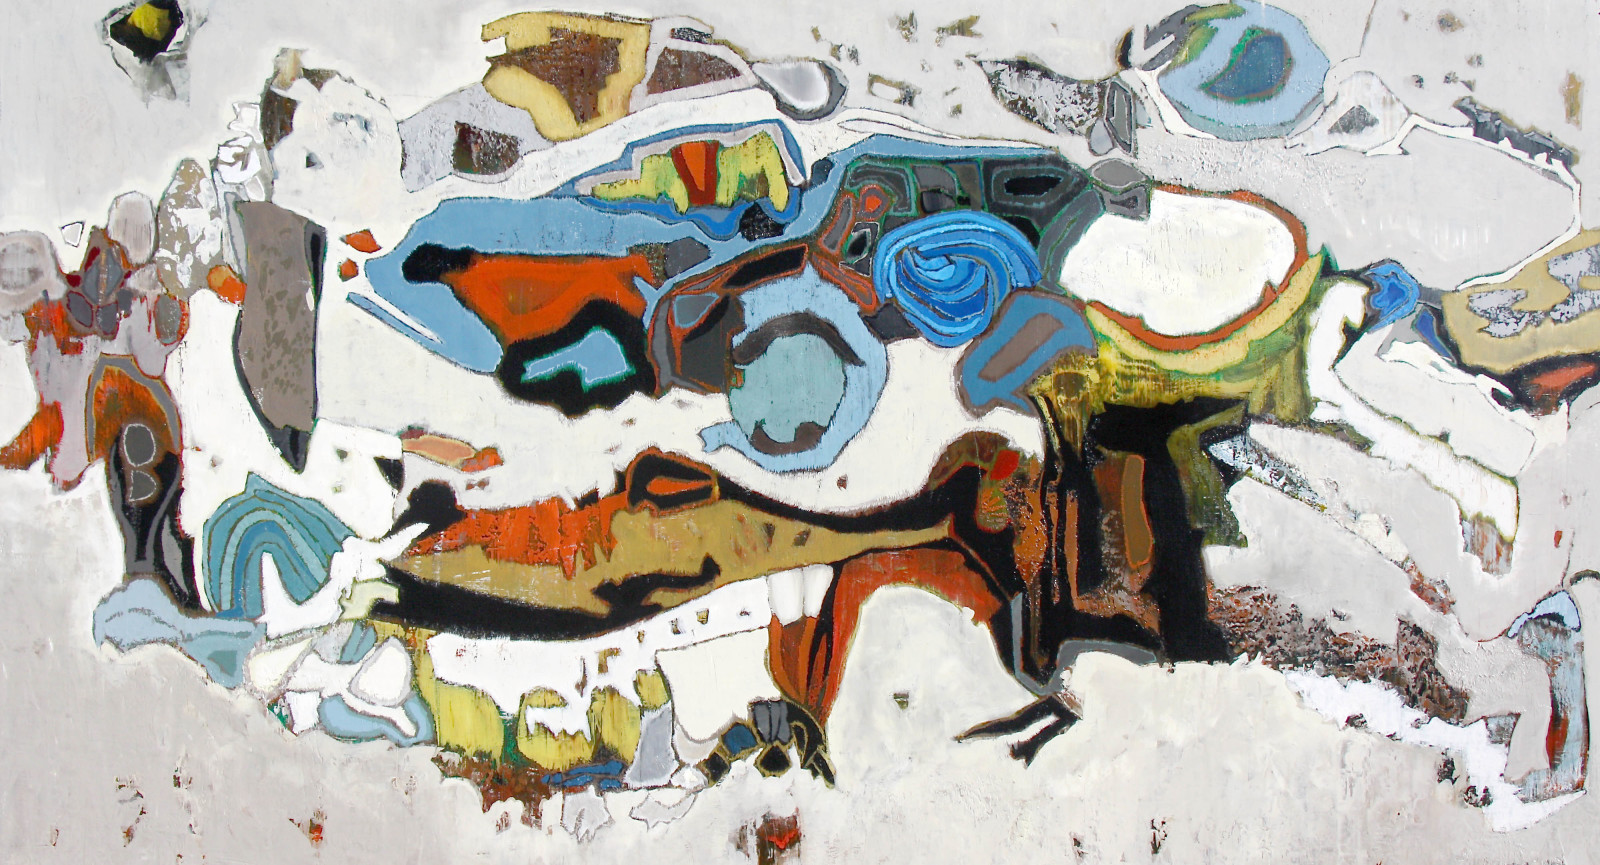 Belize, 2015, oil on canvas, 38 x 70 in.  Collection of Long Beach Museum of Art